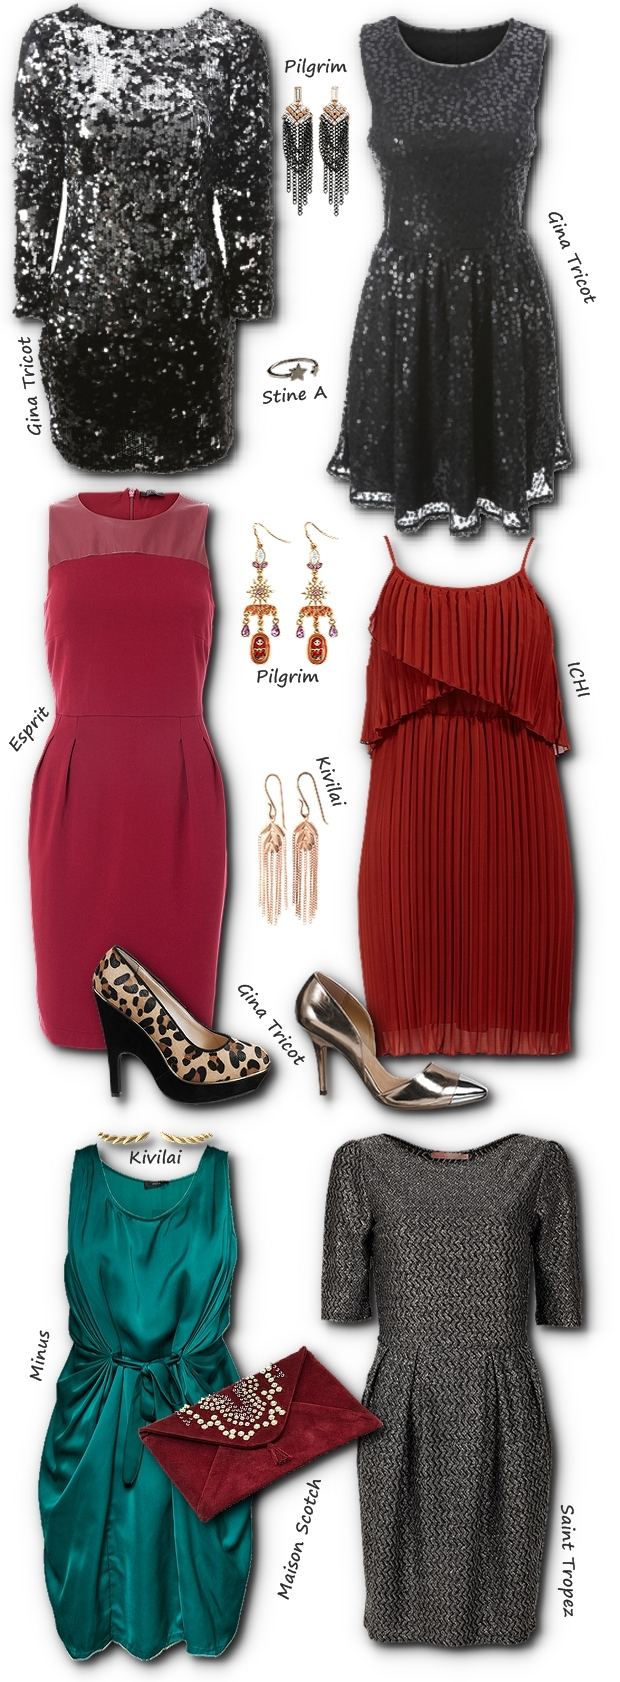 ESPRIT rød kjole, ESPRIT red dress, gina tricot sko, gina tricot leopard sko, gina tricot shoes, ichi red dress, ichi rød khole, plisseret rød kjole ichi, Maison Scotch clutch, Maison Scotch red clutch, Maison Scotch taske, stne a stjernering, stine a smykker, Kivilai smykker, Kivilai jewellery , Kivilai earrings, Kivilai øreringe, minus kjole, minus grøn kjole, minus tøl green silk dress, pilgrim smykker, pilgrim øreringe, saint tropez kjole, grå kjole, pallietkjole gina tricot, julefrokost kjole, sequin dress